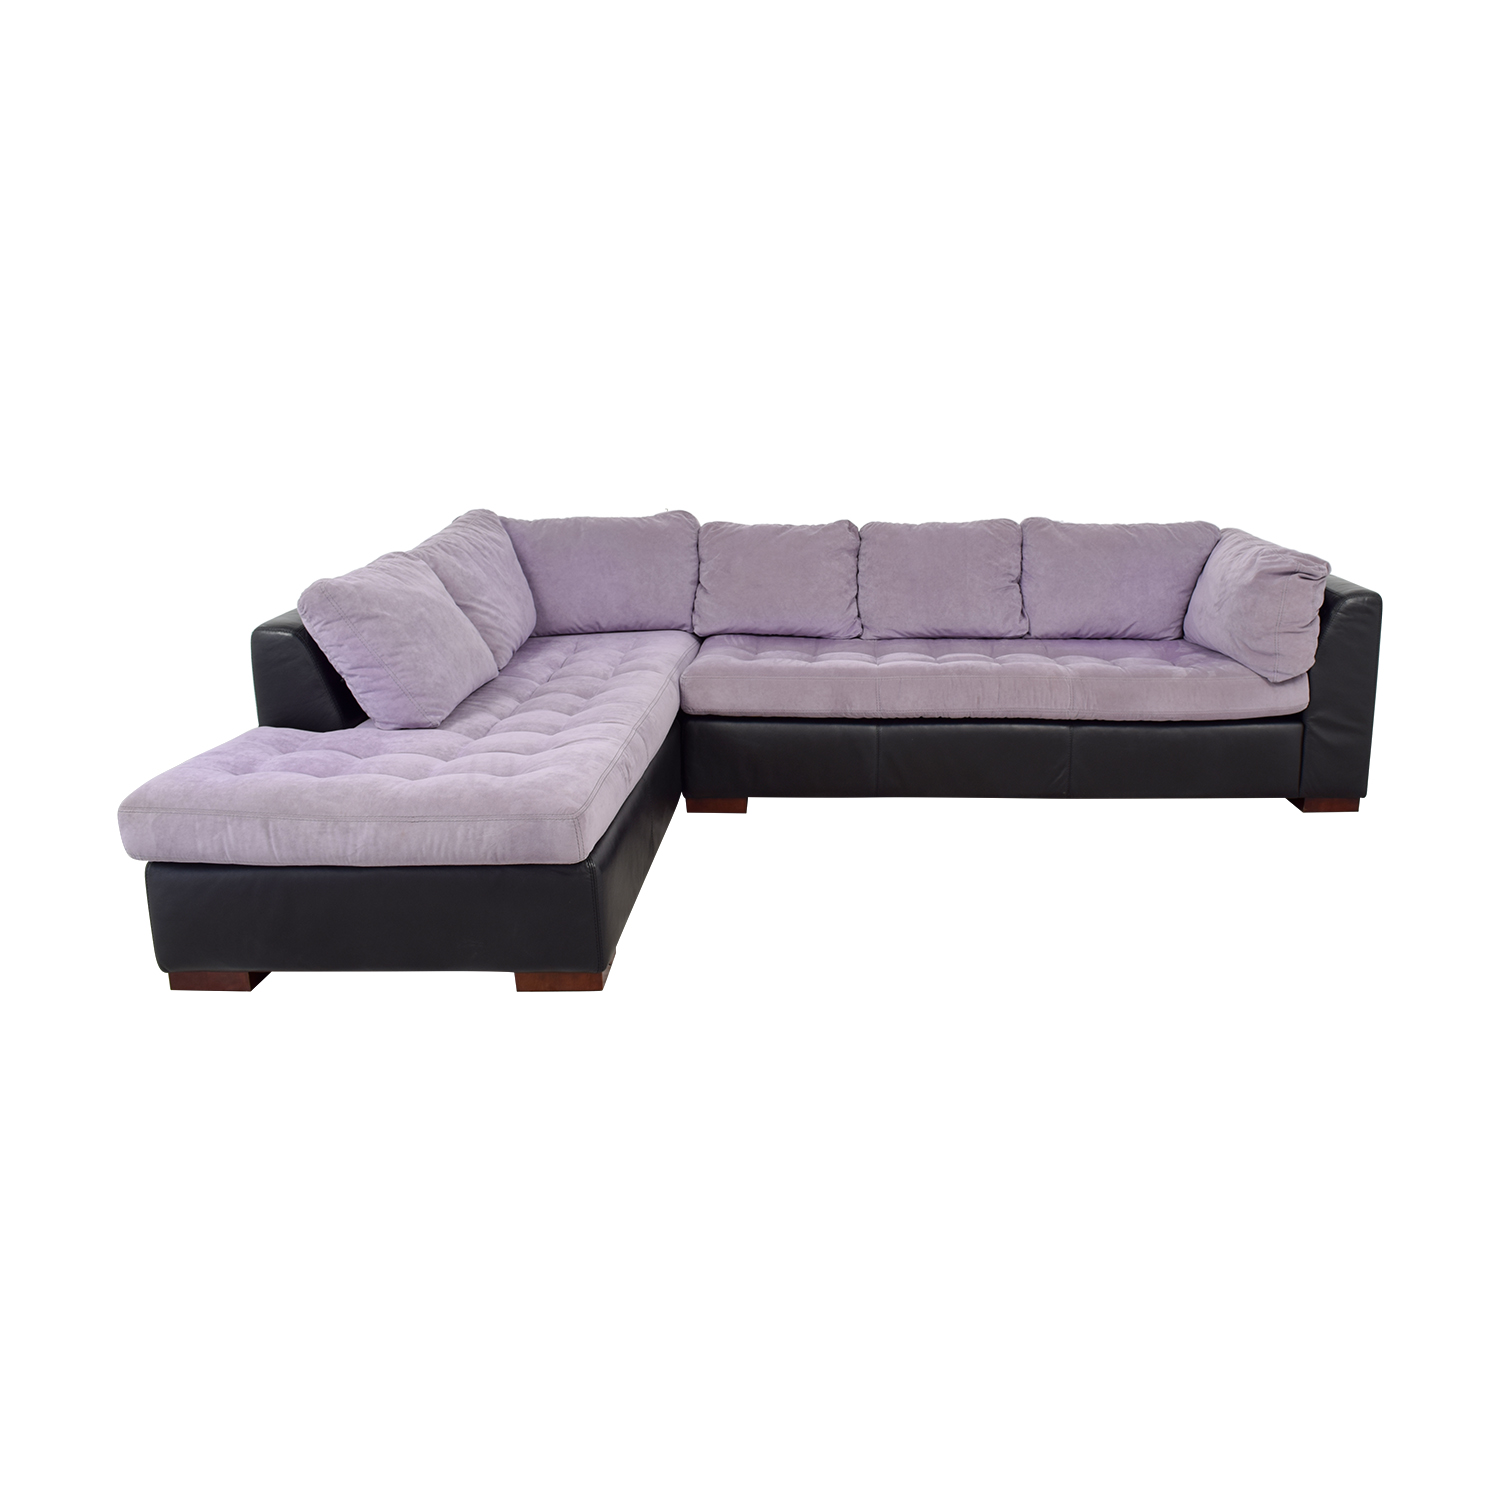 American Leather Sofas Sectional: American Leather American Leather Sectional Sofa